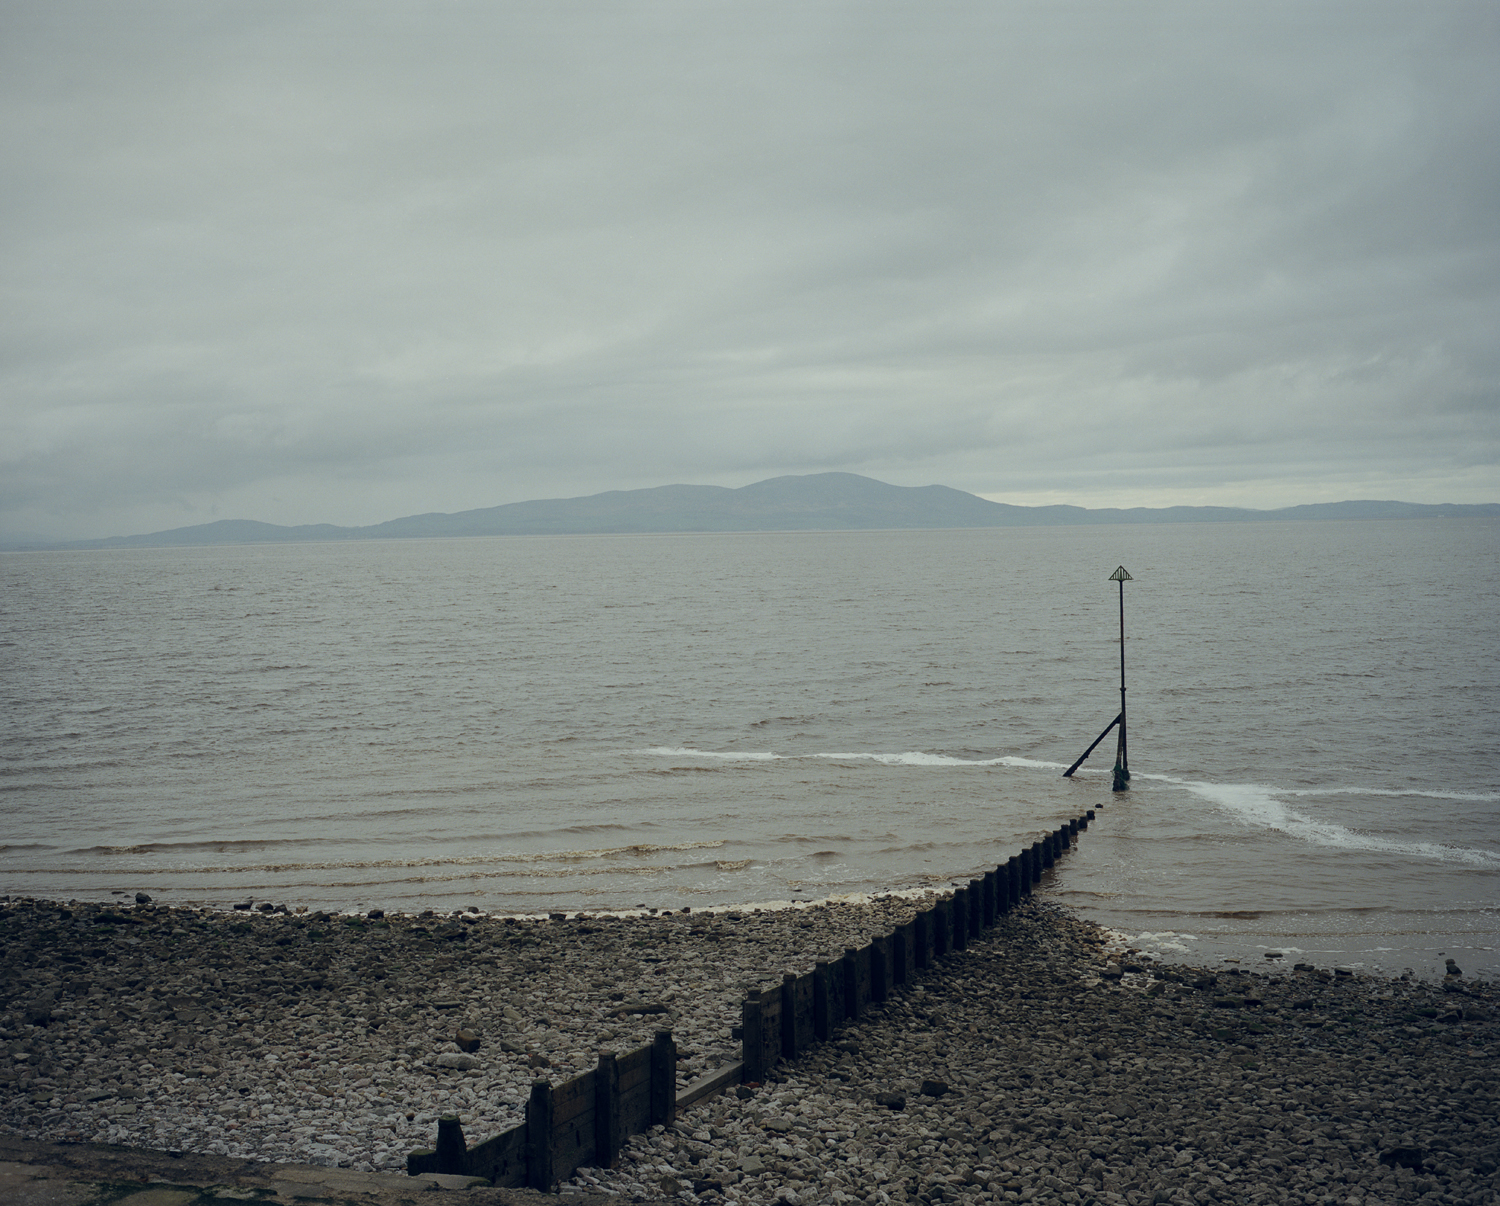 Looking at the hills of Dumfriesshire in Scotland from Cumbria, England, across the Solway Firth